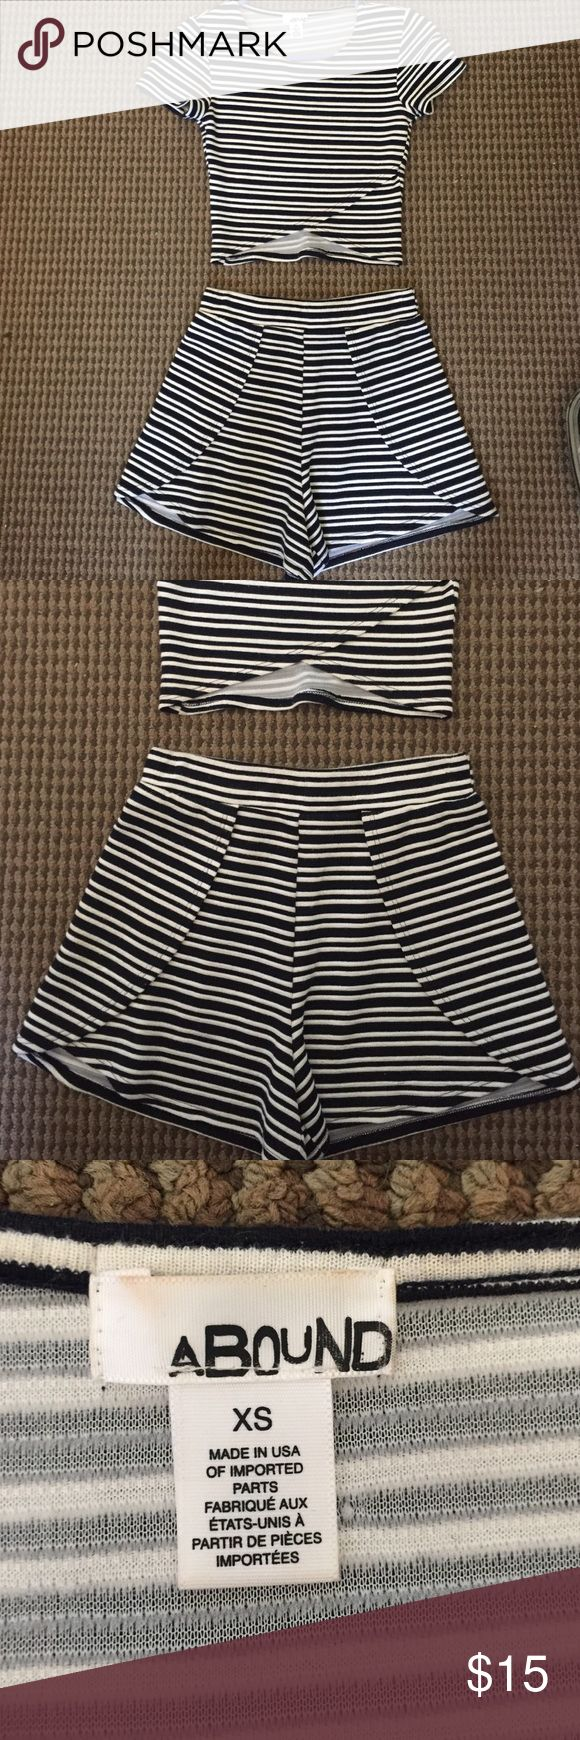 Navy and white striped two piece set!! Only worn once, perfect condition!! Really love this set!! Purchased from Nordstrom rack! TOP IS XS but the tag somehow fell off the bottoms but the bottoms are size M!!! I'm usually an XS or S and the bottoms fit me perfectly!! The bottoms also have elastic waistband!! Nordstrom Other